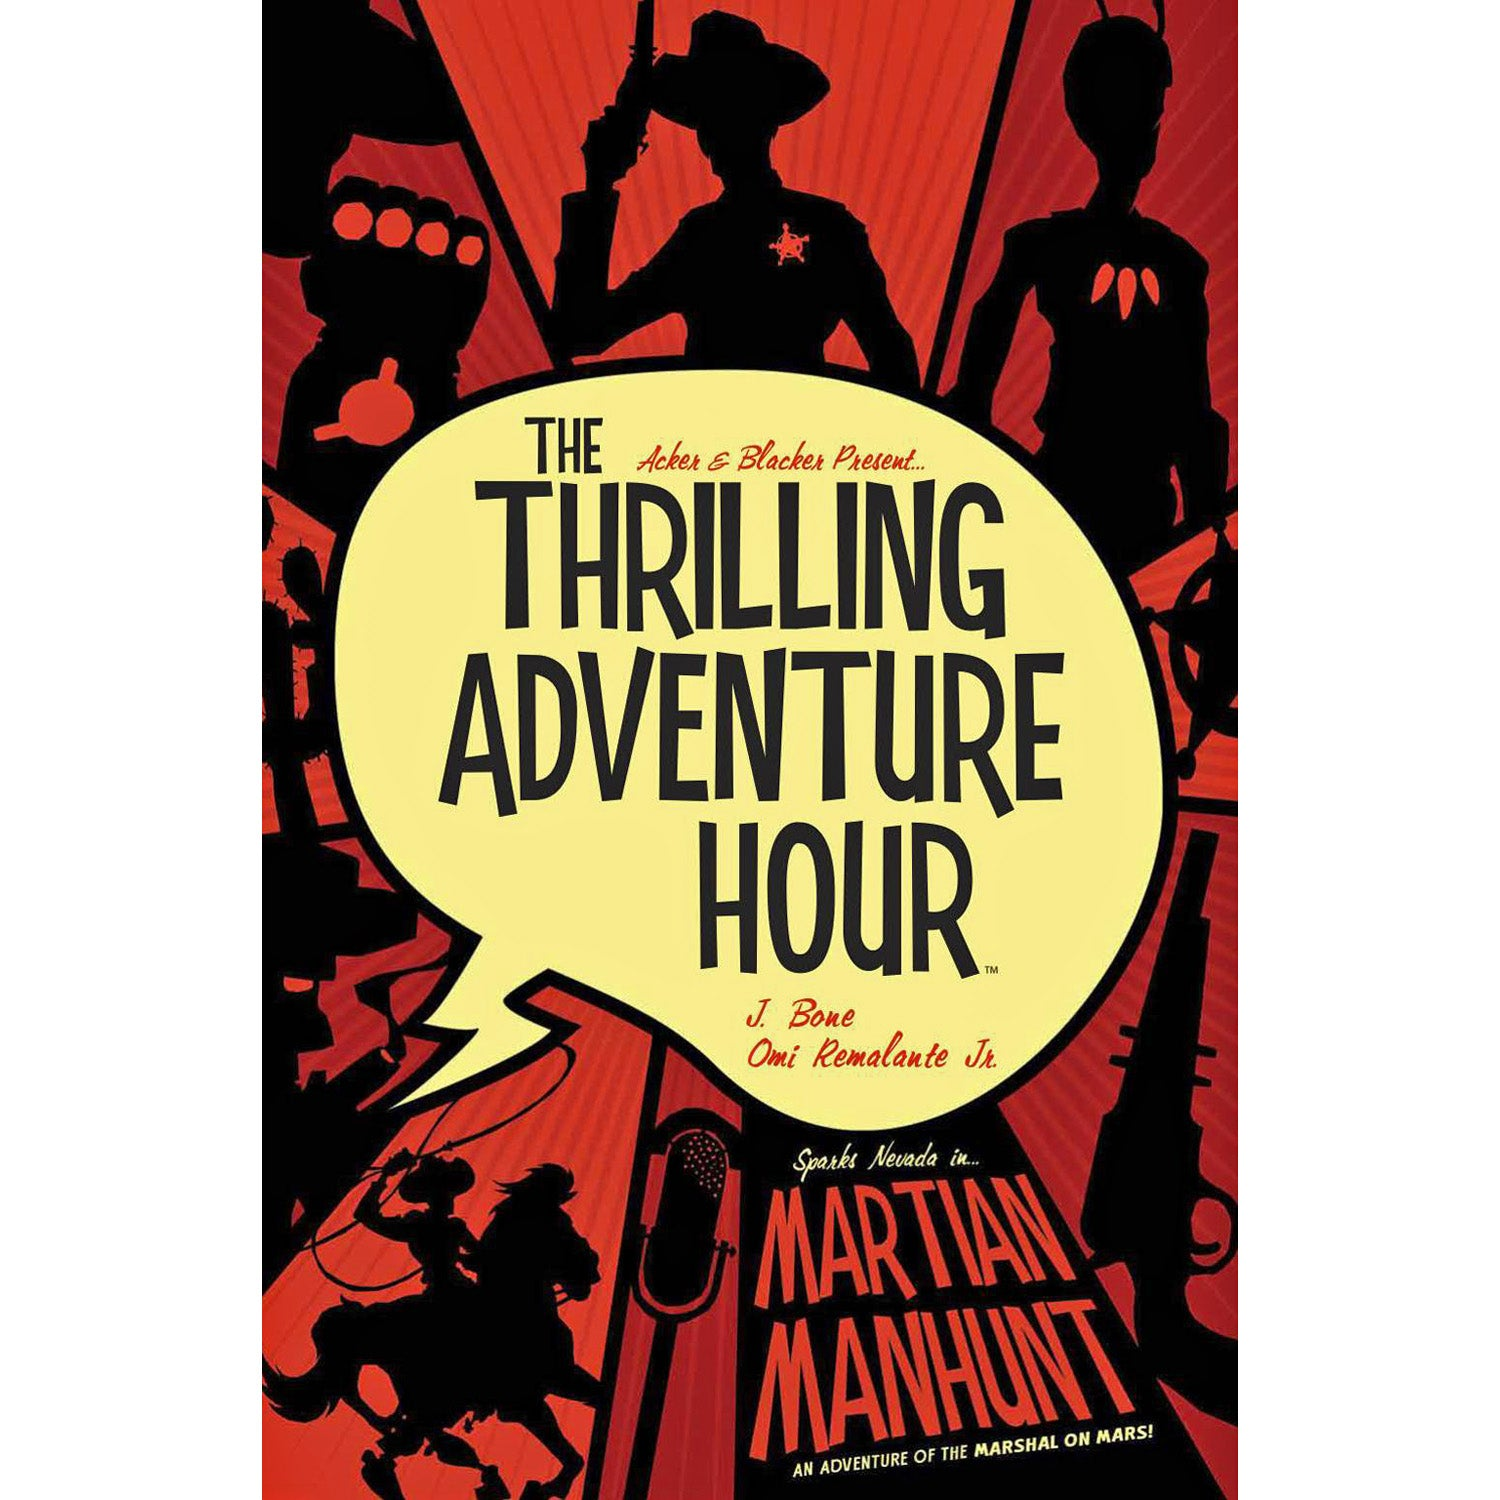 Thrilling Adventure Hour: Martian Manhunt